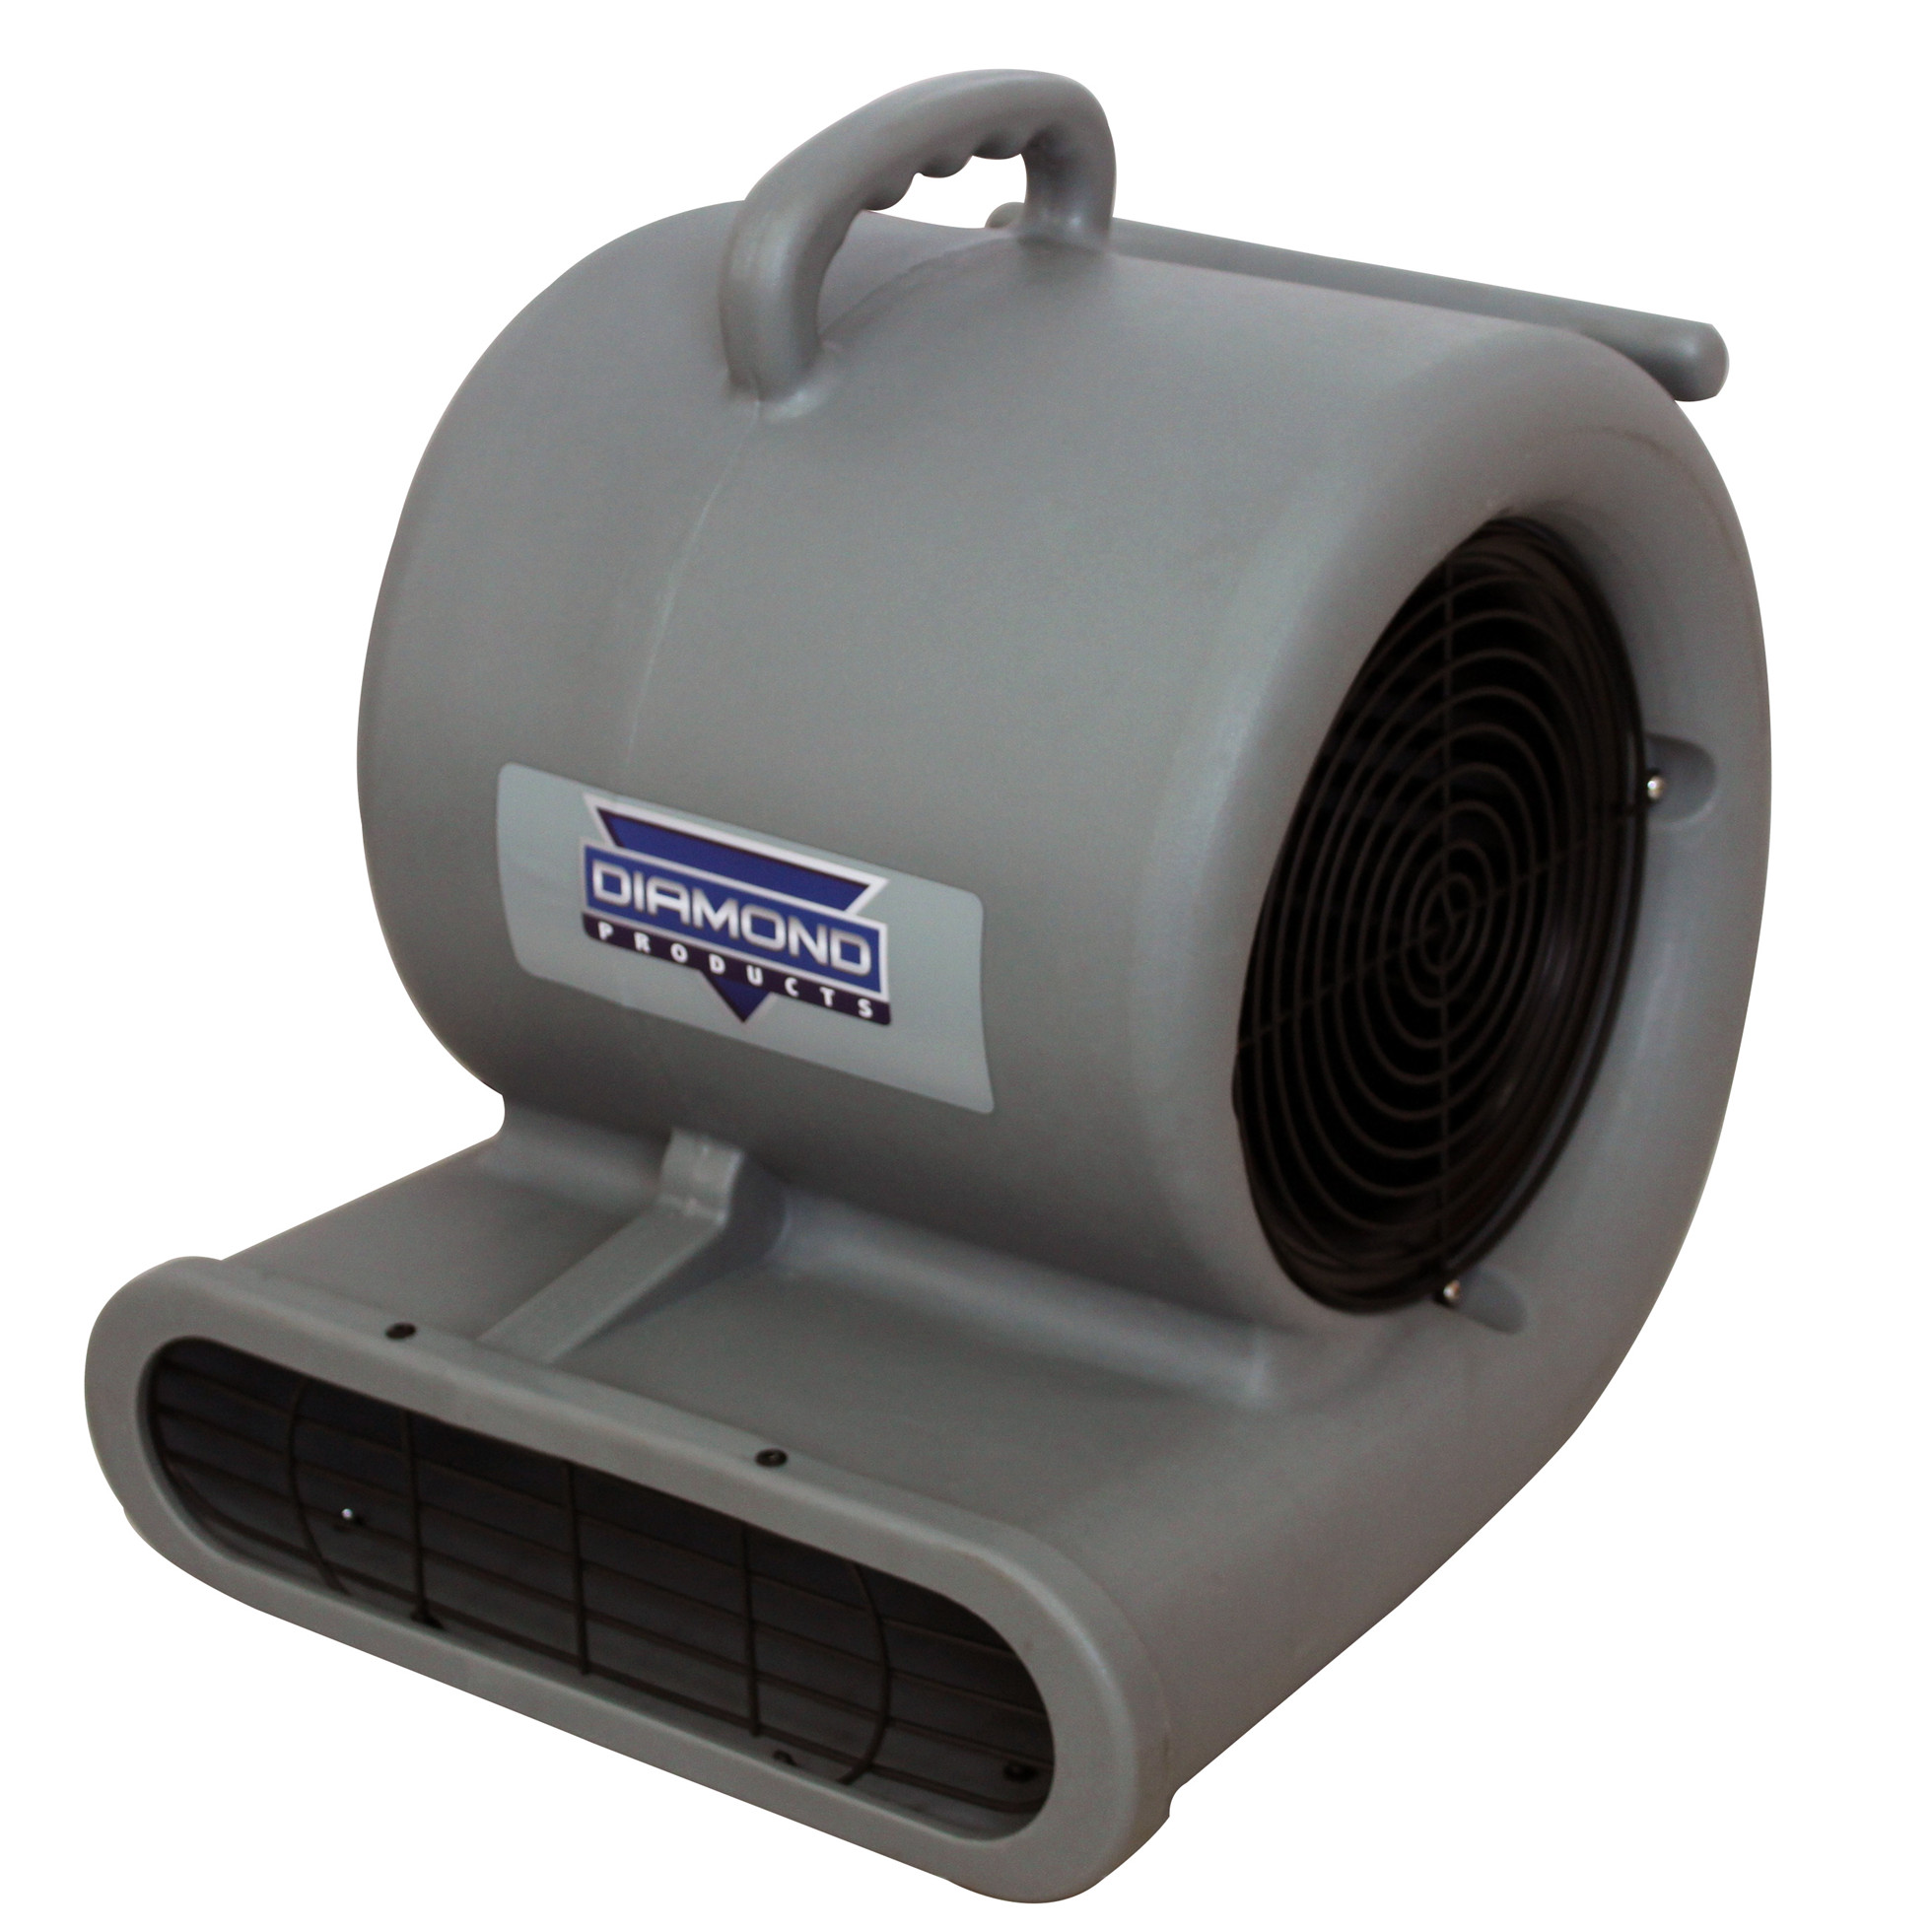 Diama Dry Air Blower